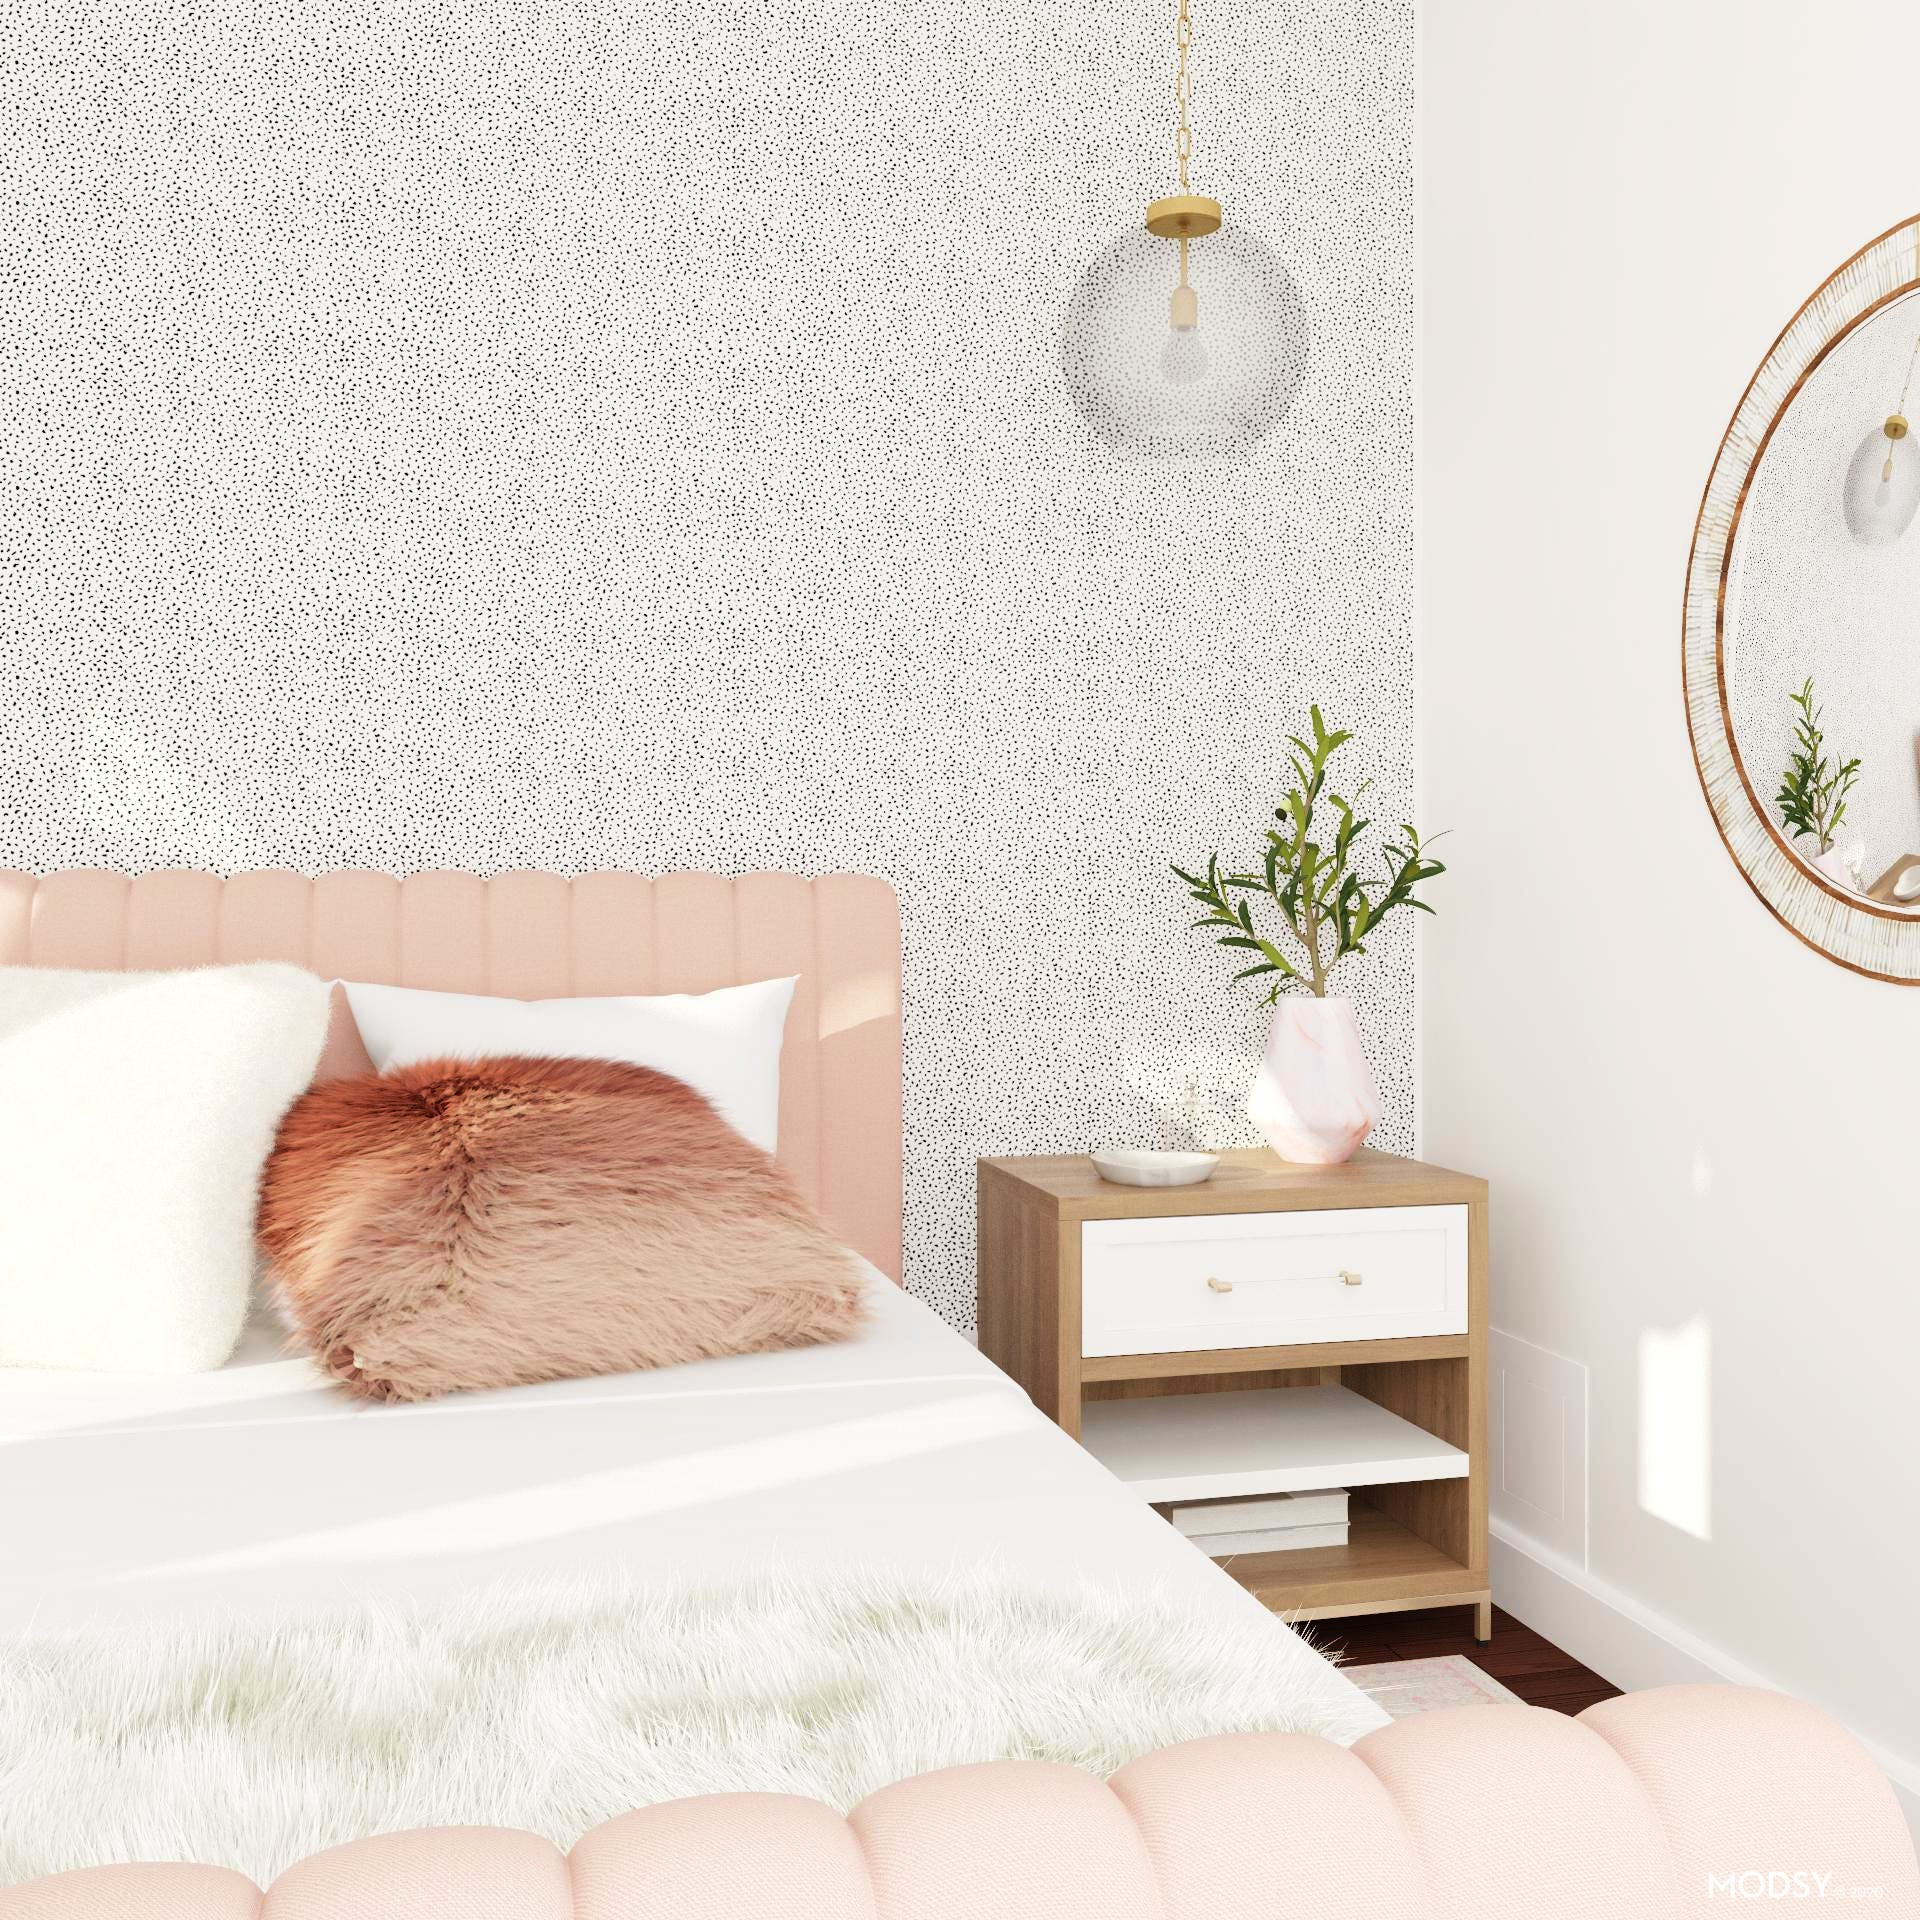 Sweet Glam Bedroom Tableau in Pinks and Polka-dots